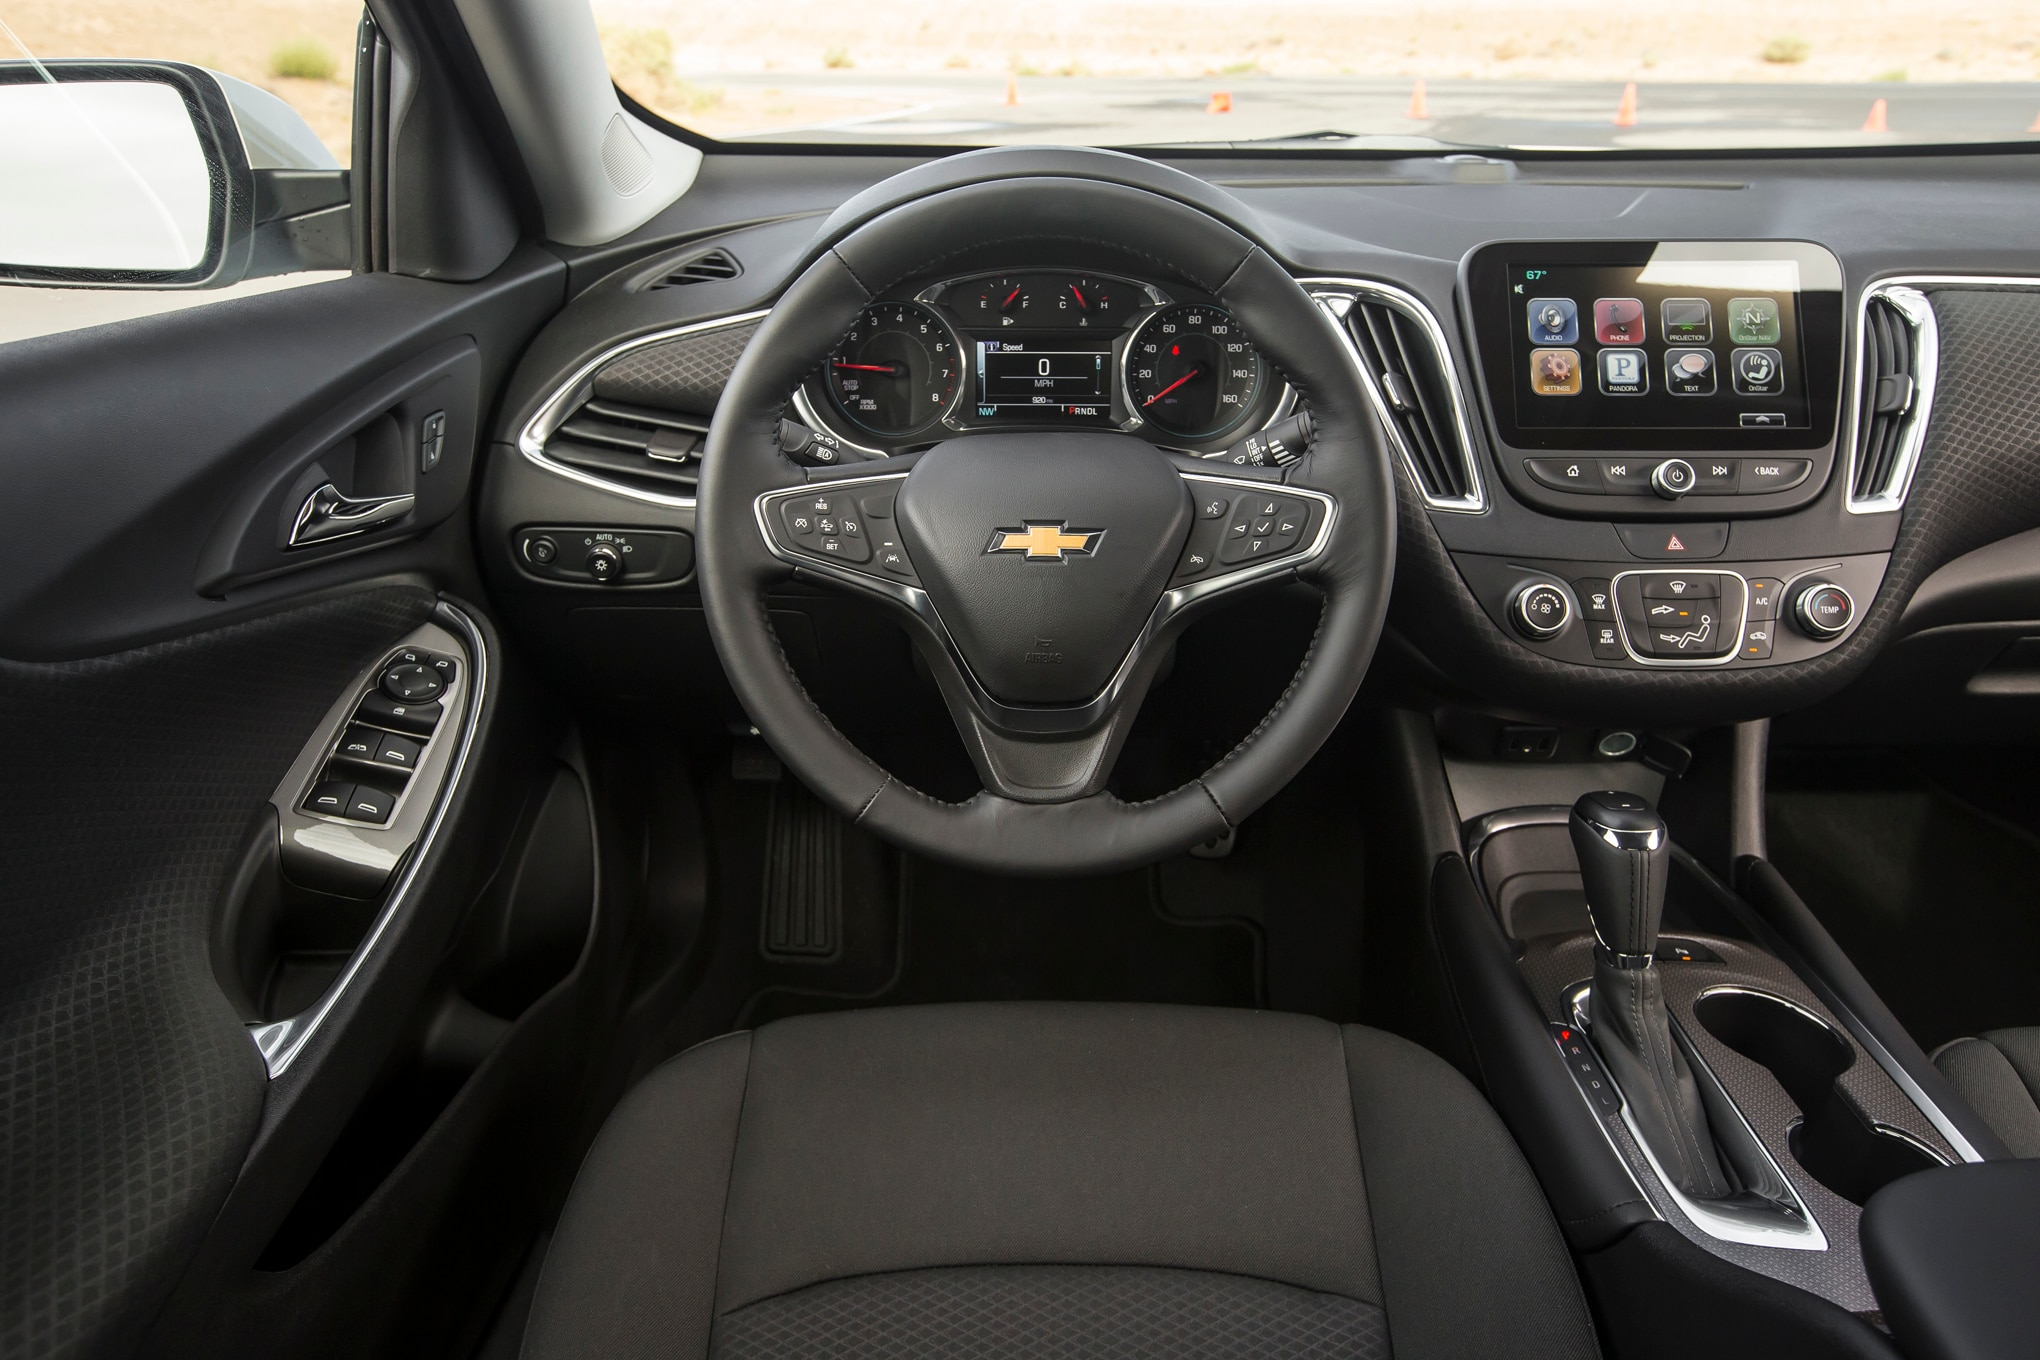 chevrolet malibu 2016 1 5t primera prueba. Black Bedroom Furniture Sets. Home Design Ideas